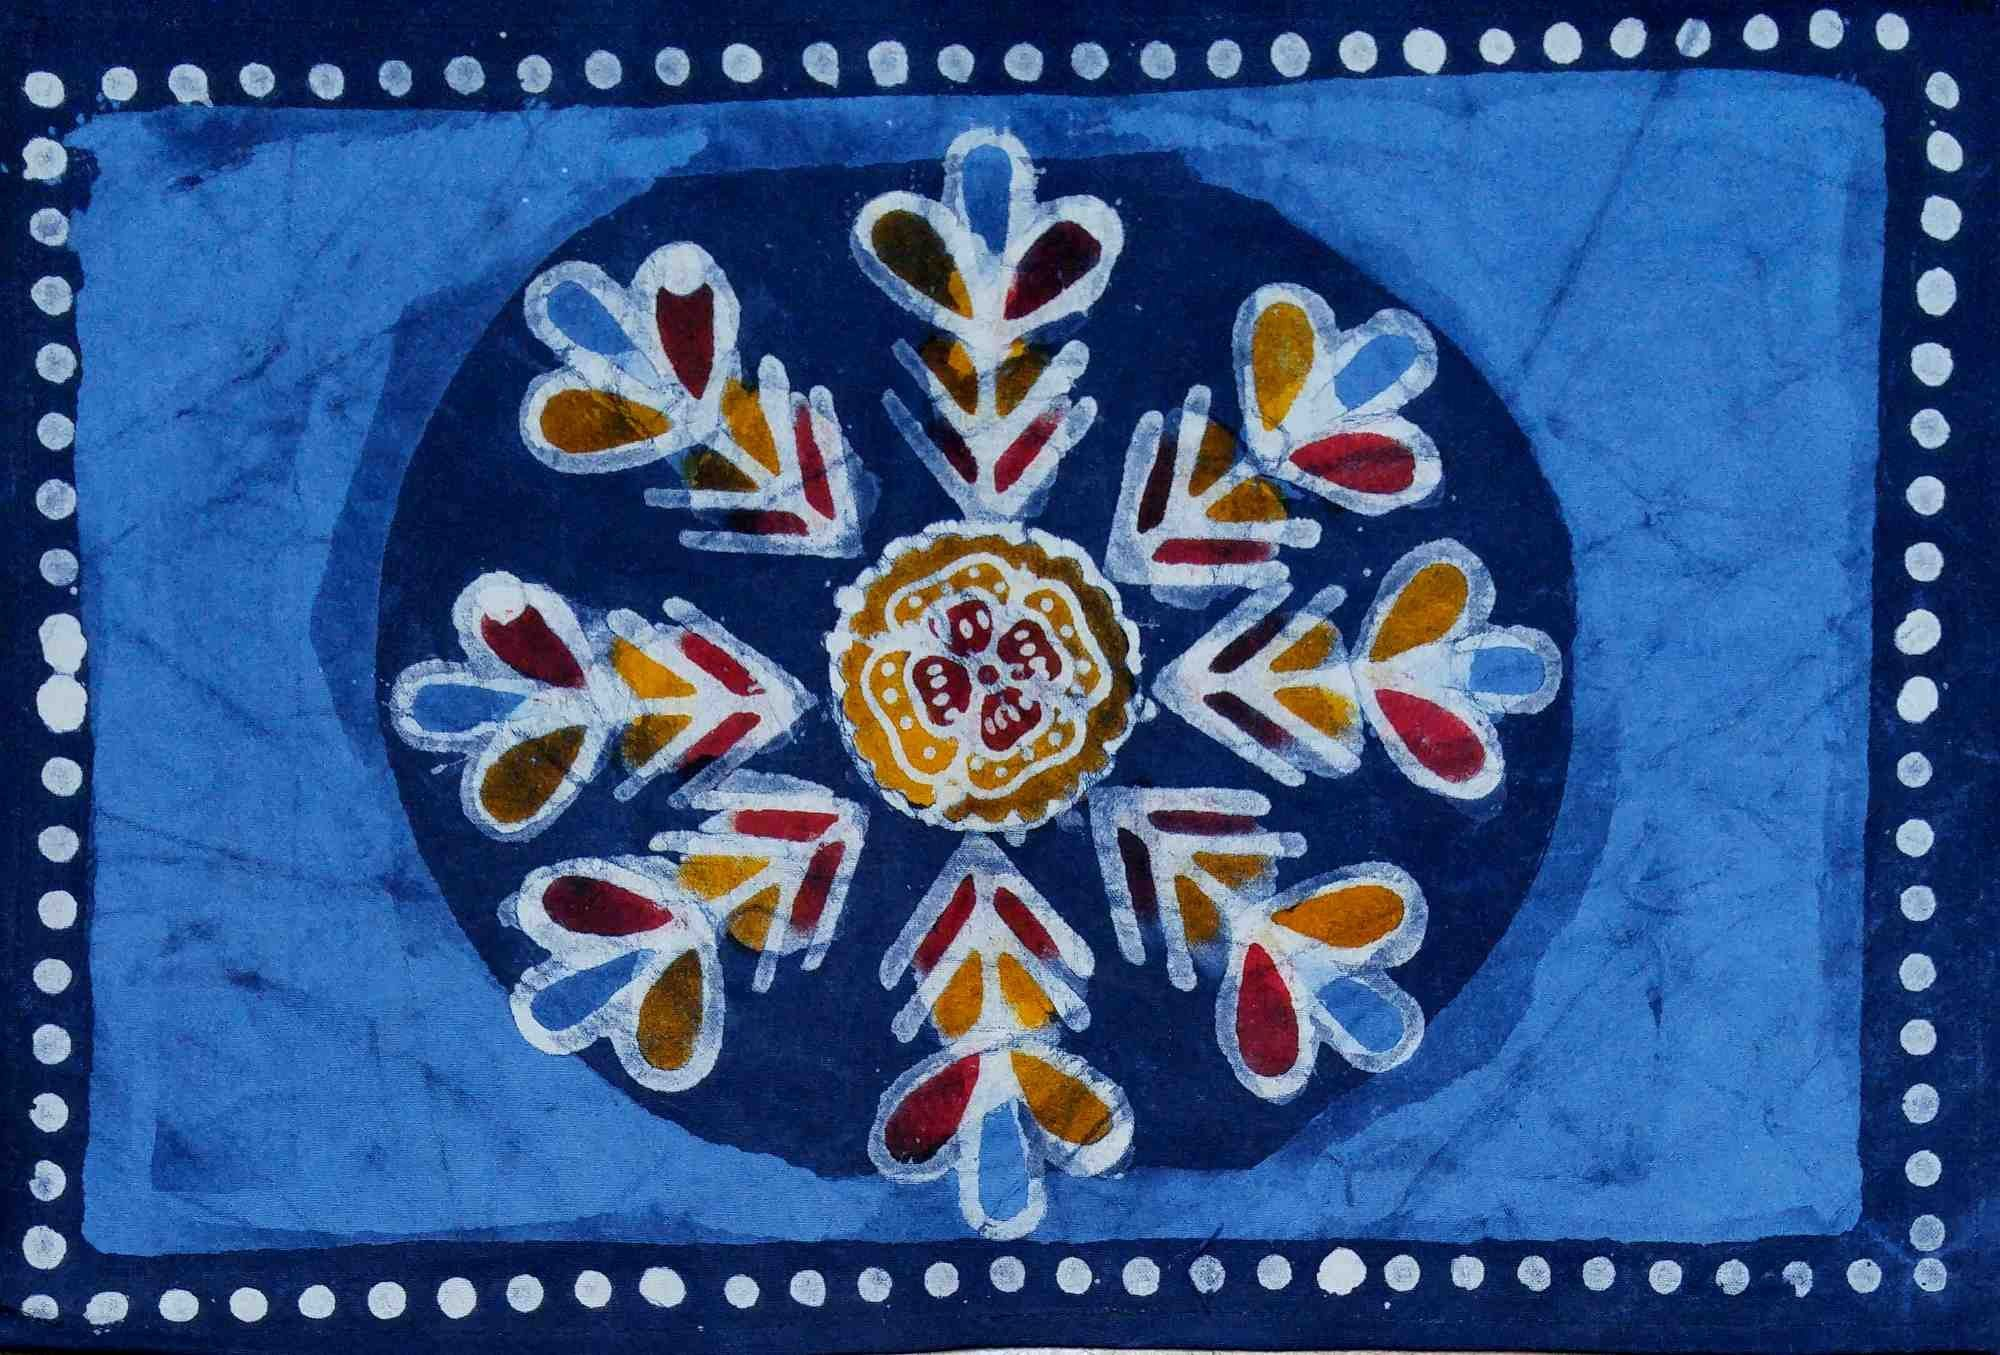 Handmade table mats design - Handmade 100 Cotton Placemat Table Mat Multi Batik Floral Design Blue Astonishing 13x19 Inches